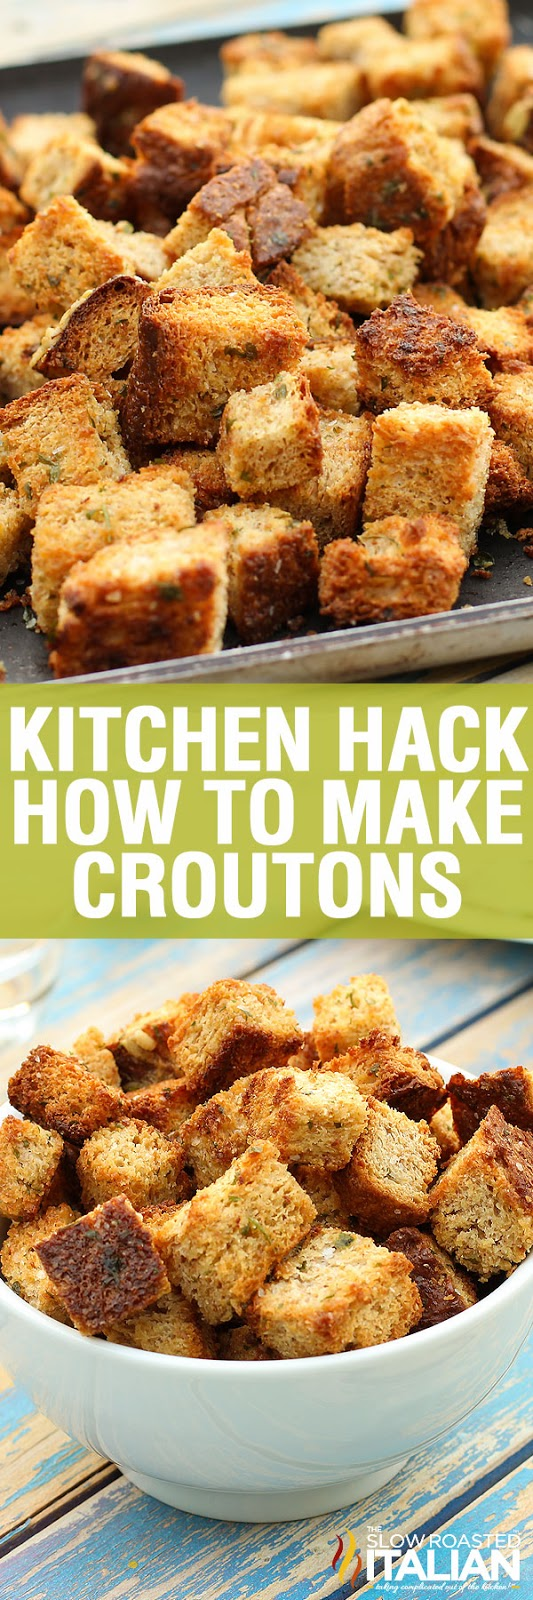 ... .com/2012/11/how-to-make-homemade-garlic-croutons.html